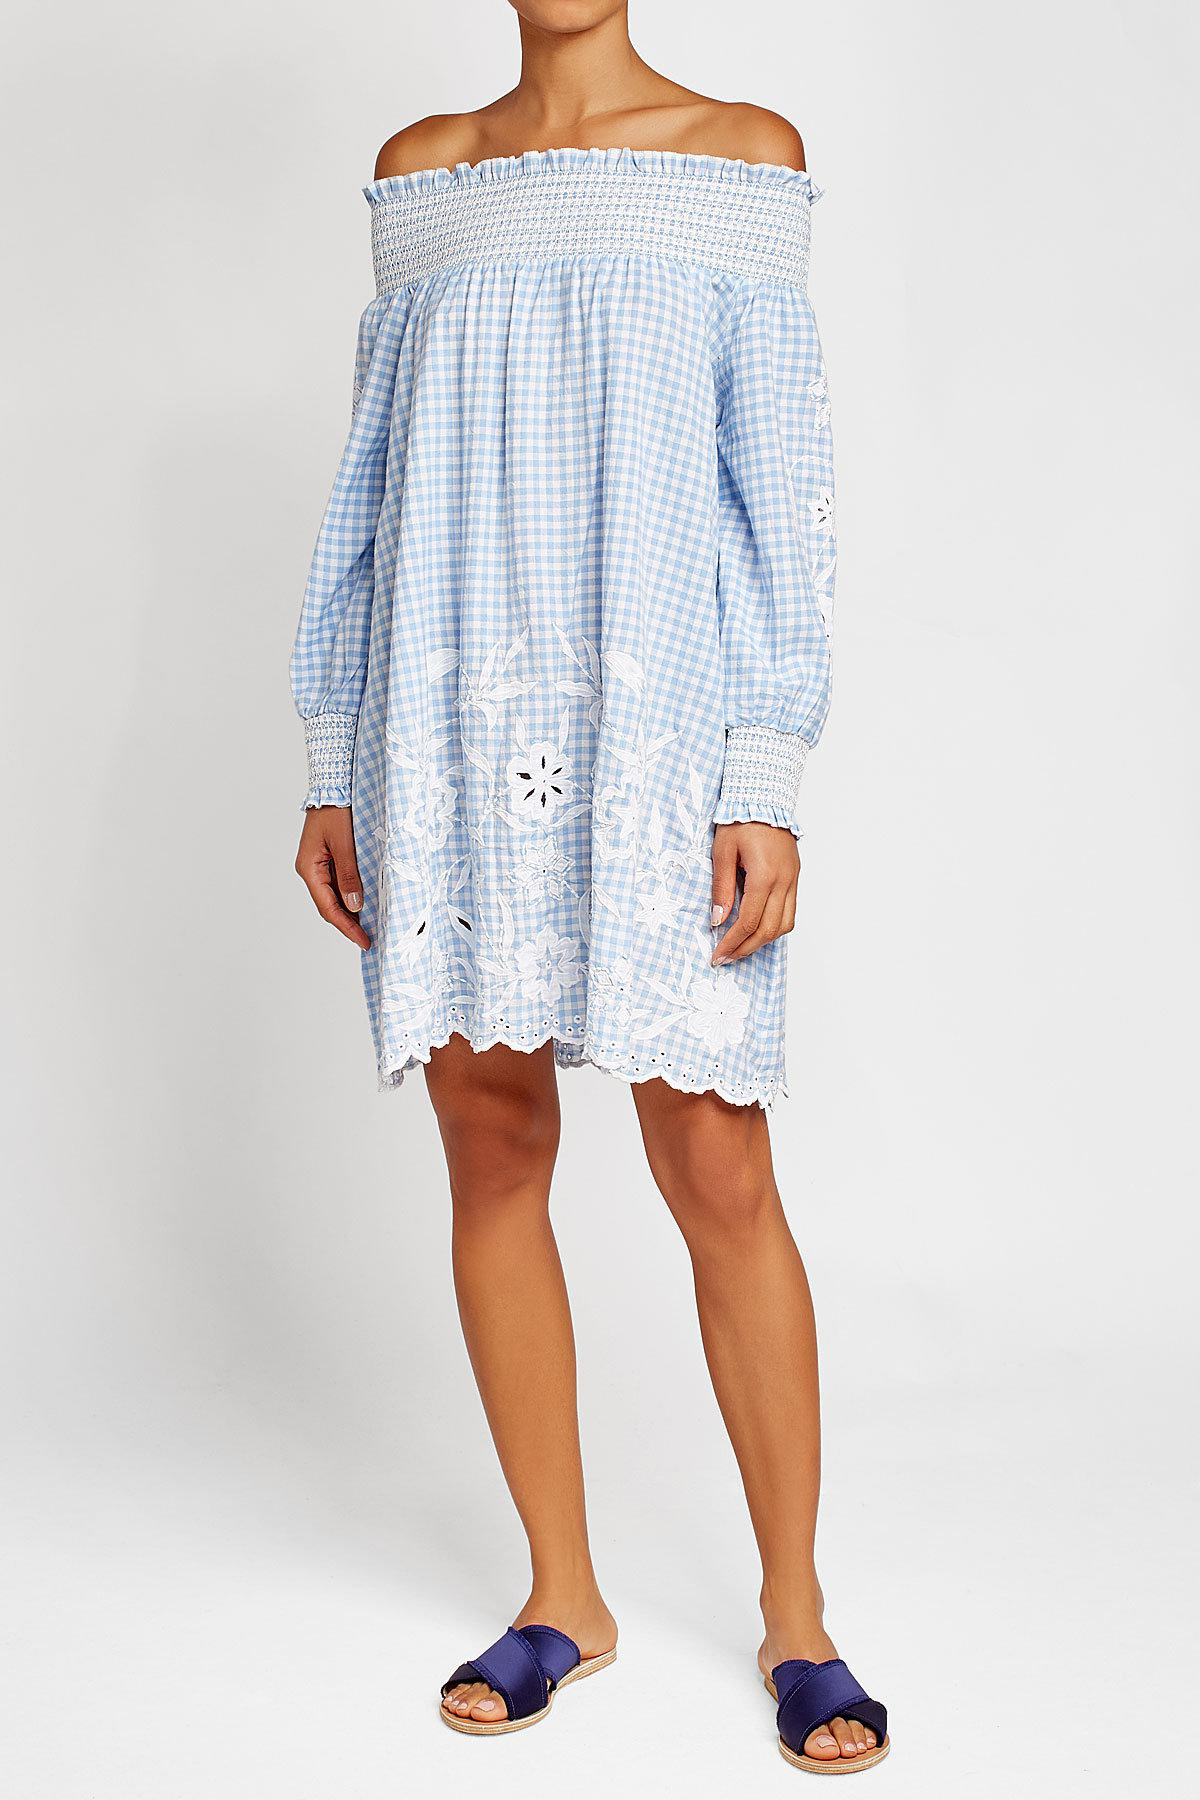 Juliet dunn embroidered dress with cut out detail in blue